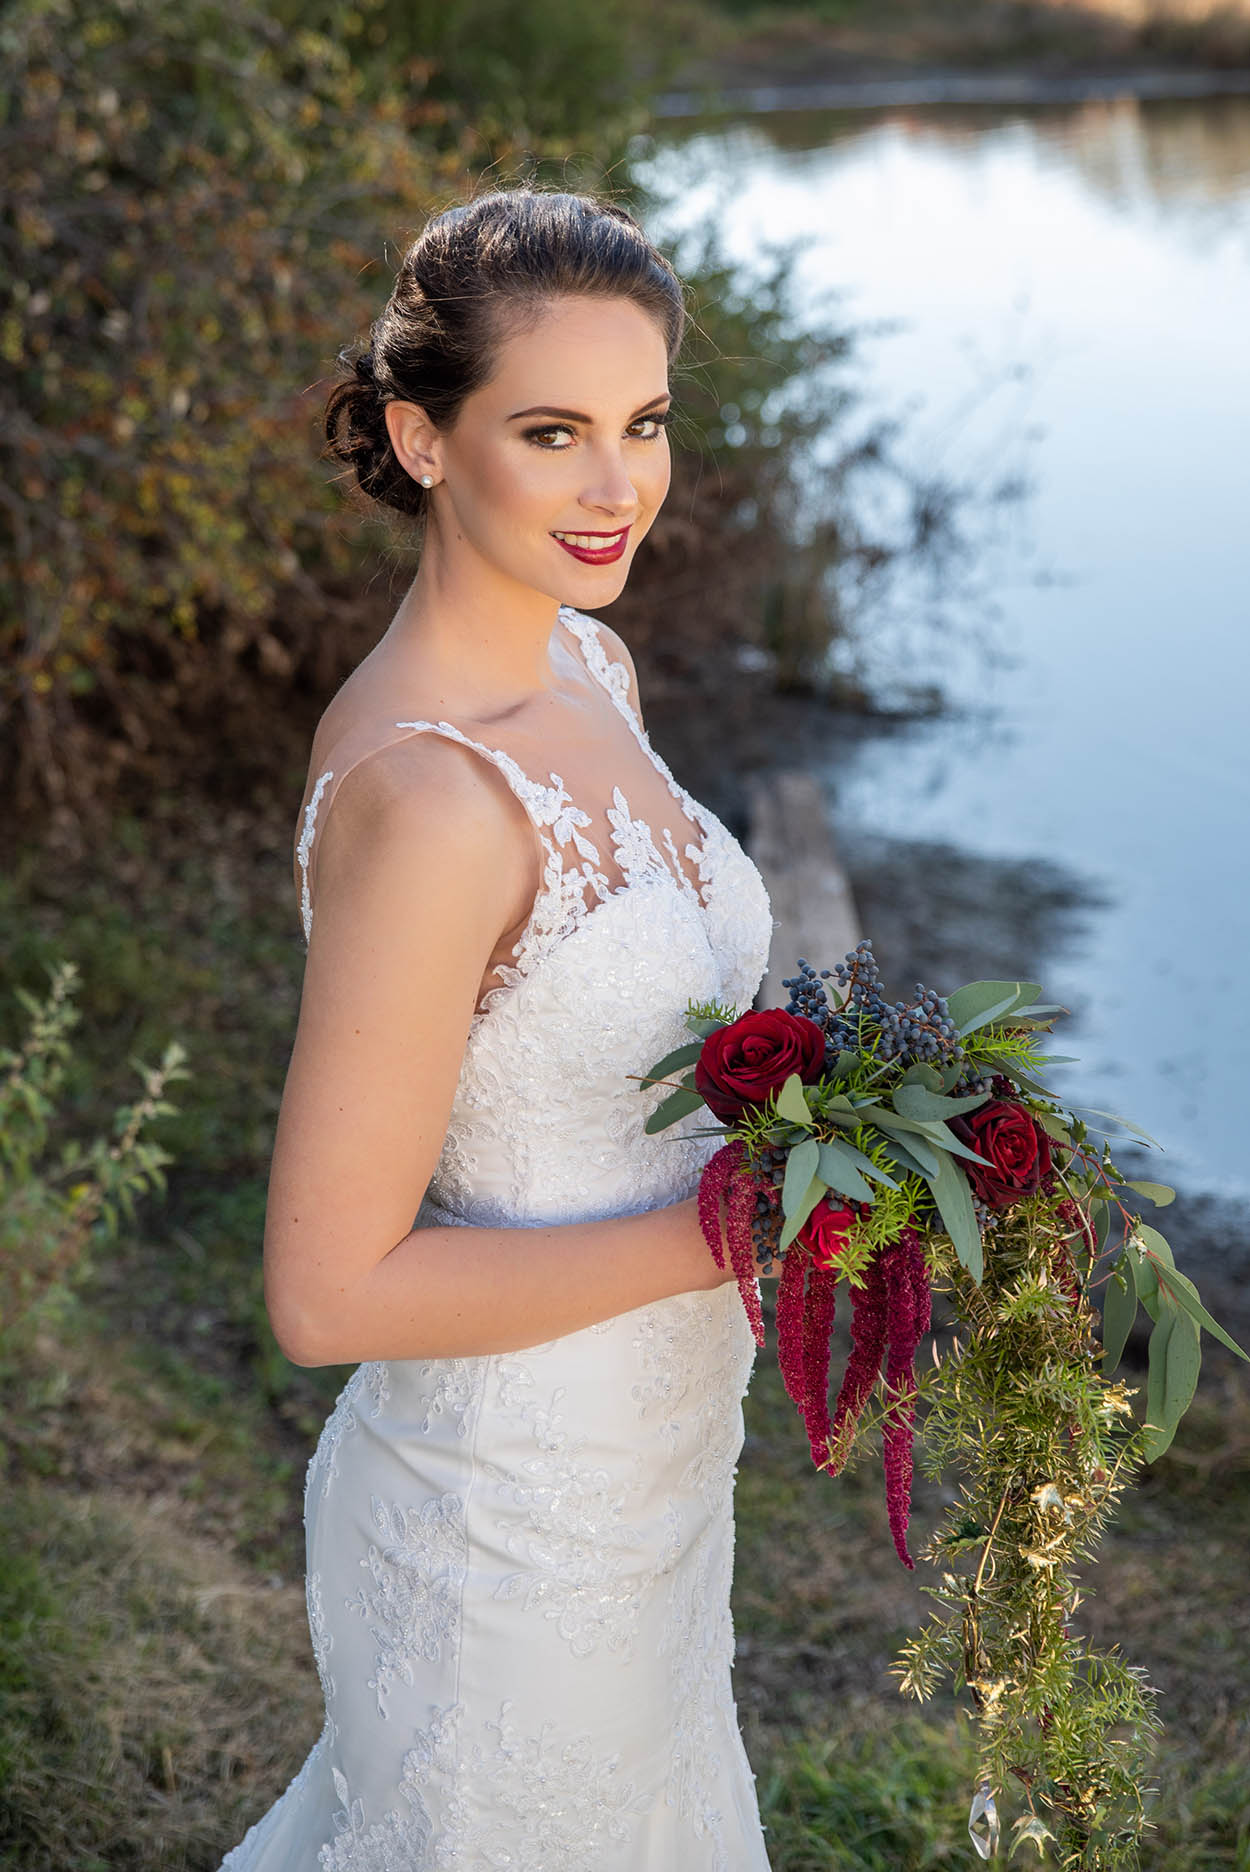 wedding photo by Mudboots at Monte Bello Estate Bloemfontein bride with flowers red lips